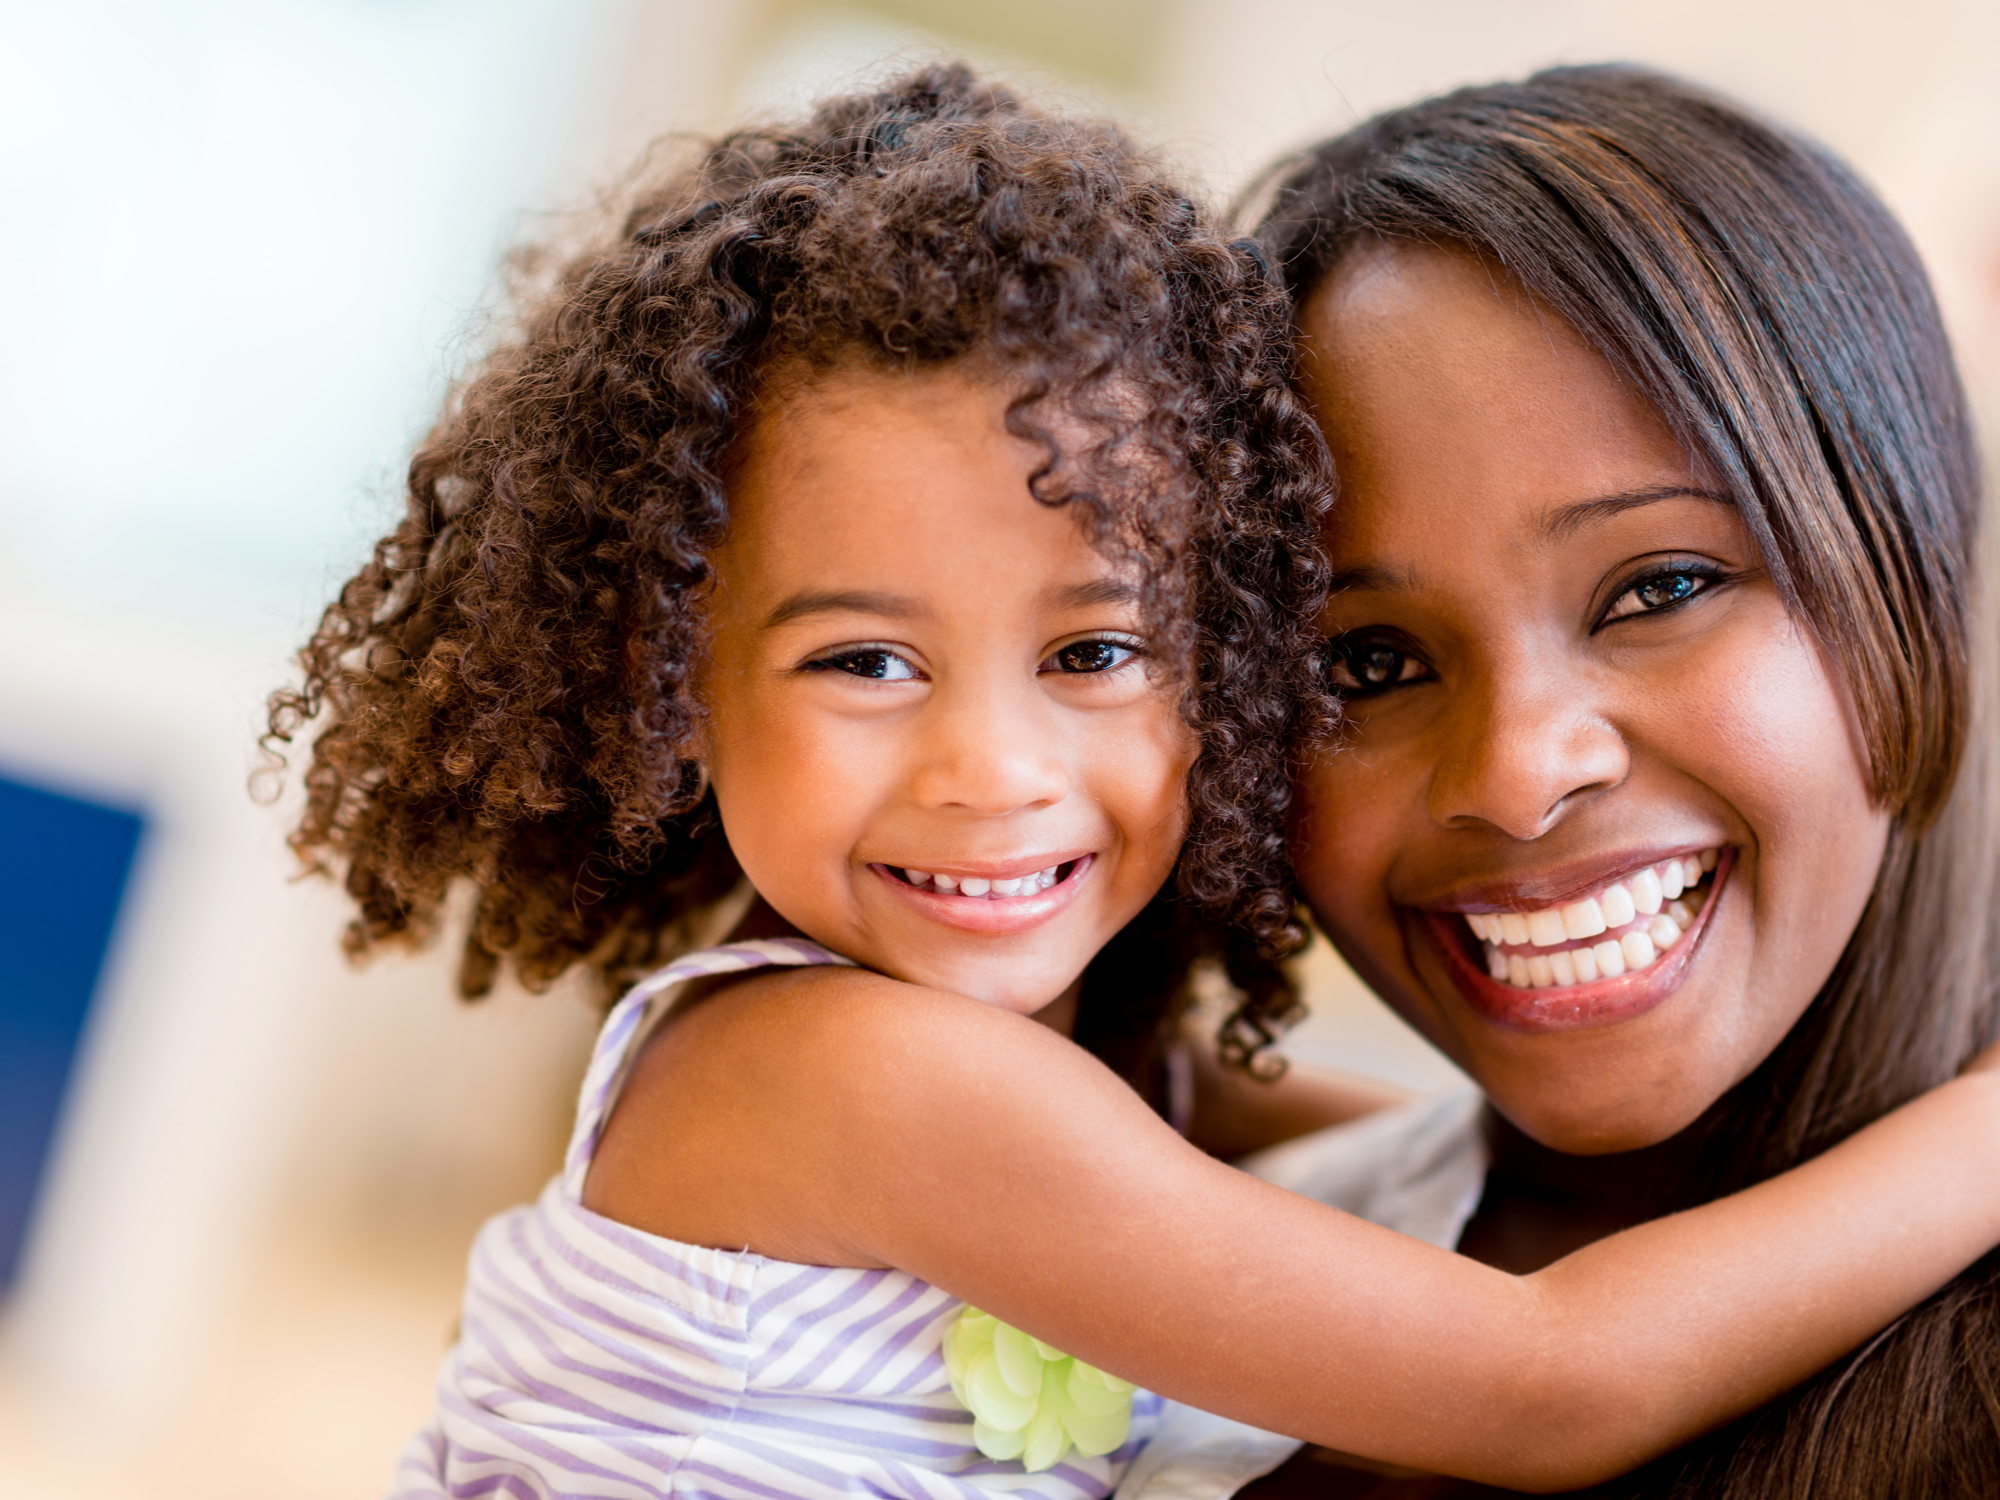 Prevent Tooth Decay in Children With Dental Sealants